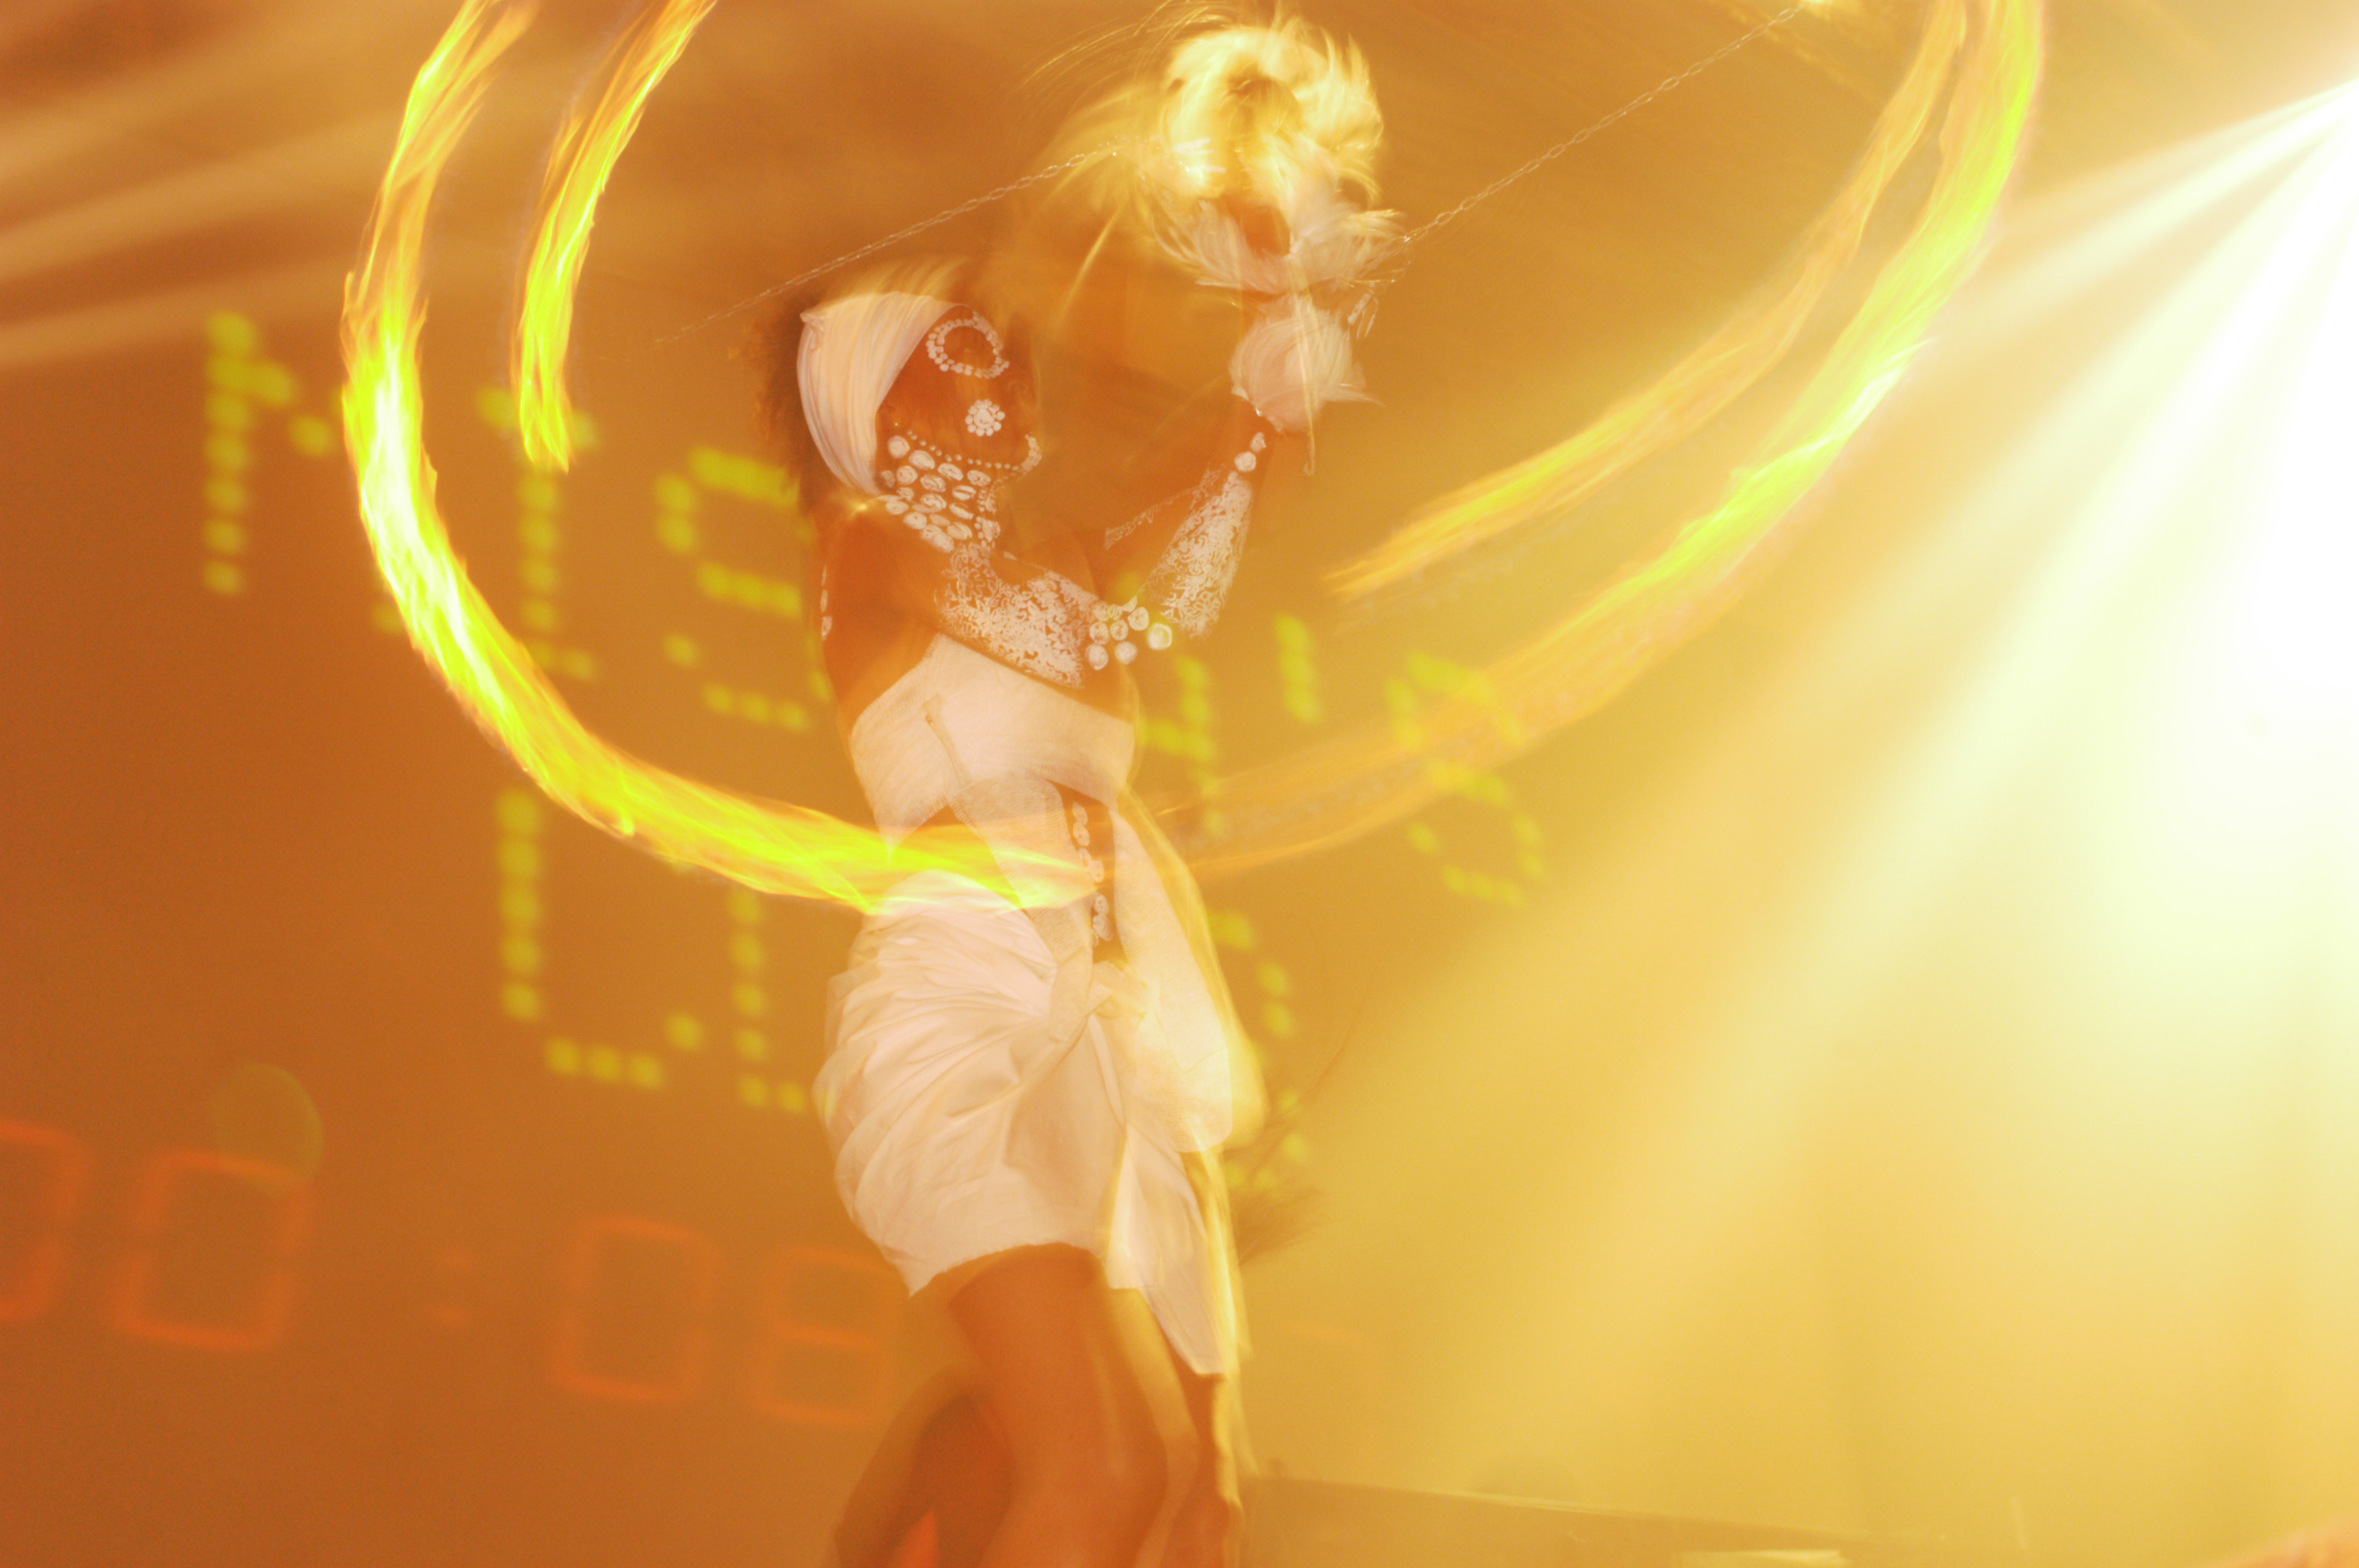 Pure - Firedancer performing on the set 2003-2